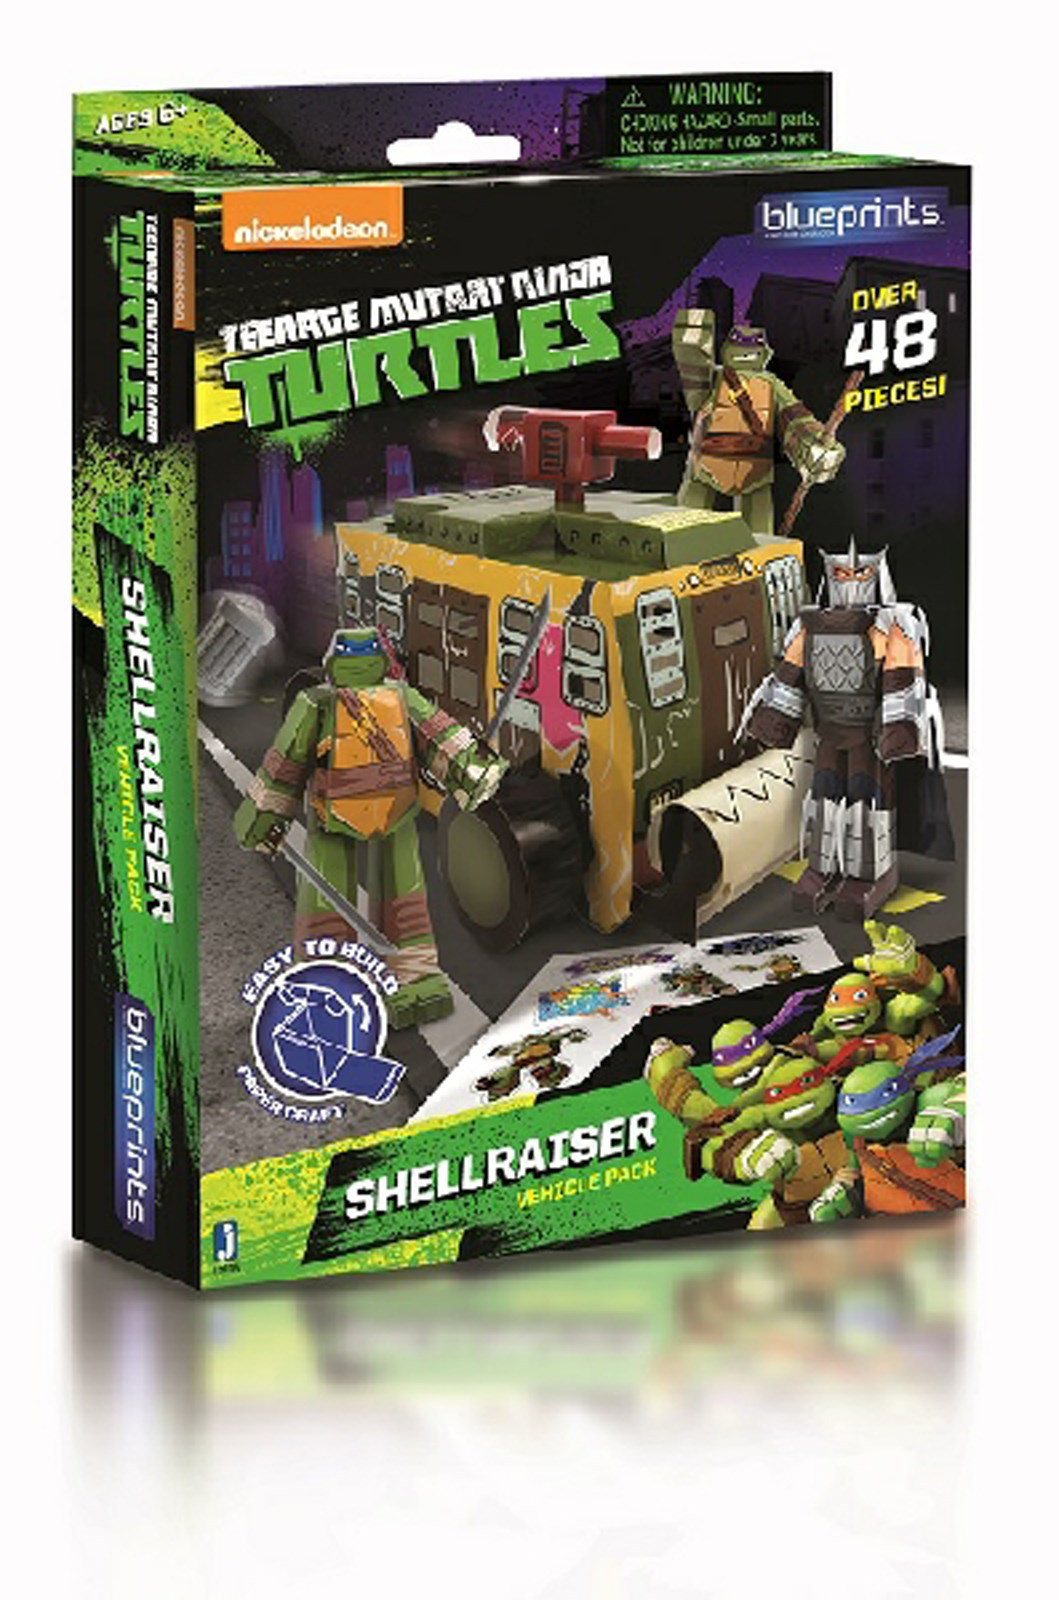 Image of Nickelodeon Teenage Mutant Ninja Turtles Paper Craft - Shellraiser Vehicle Pack